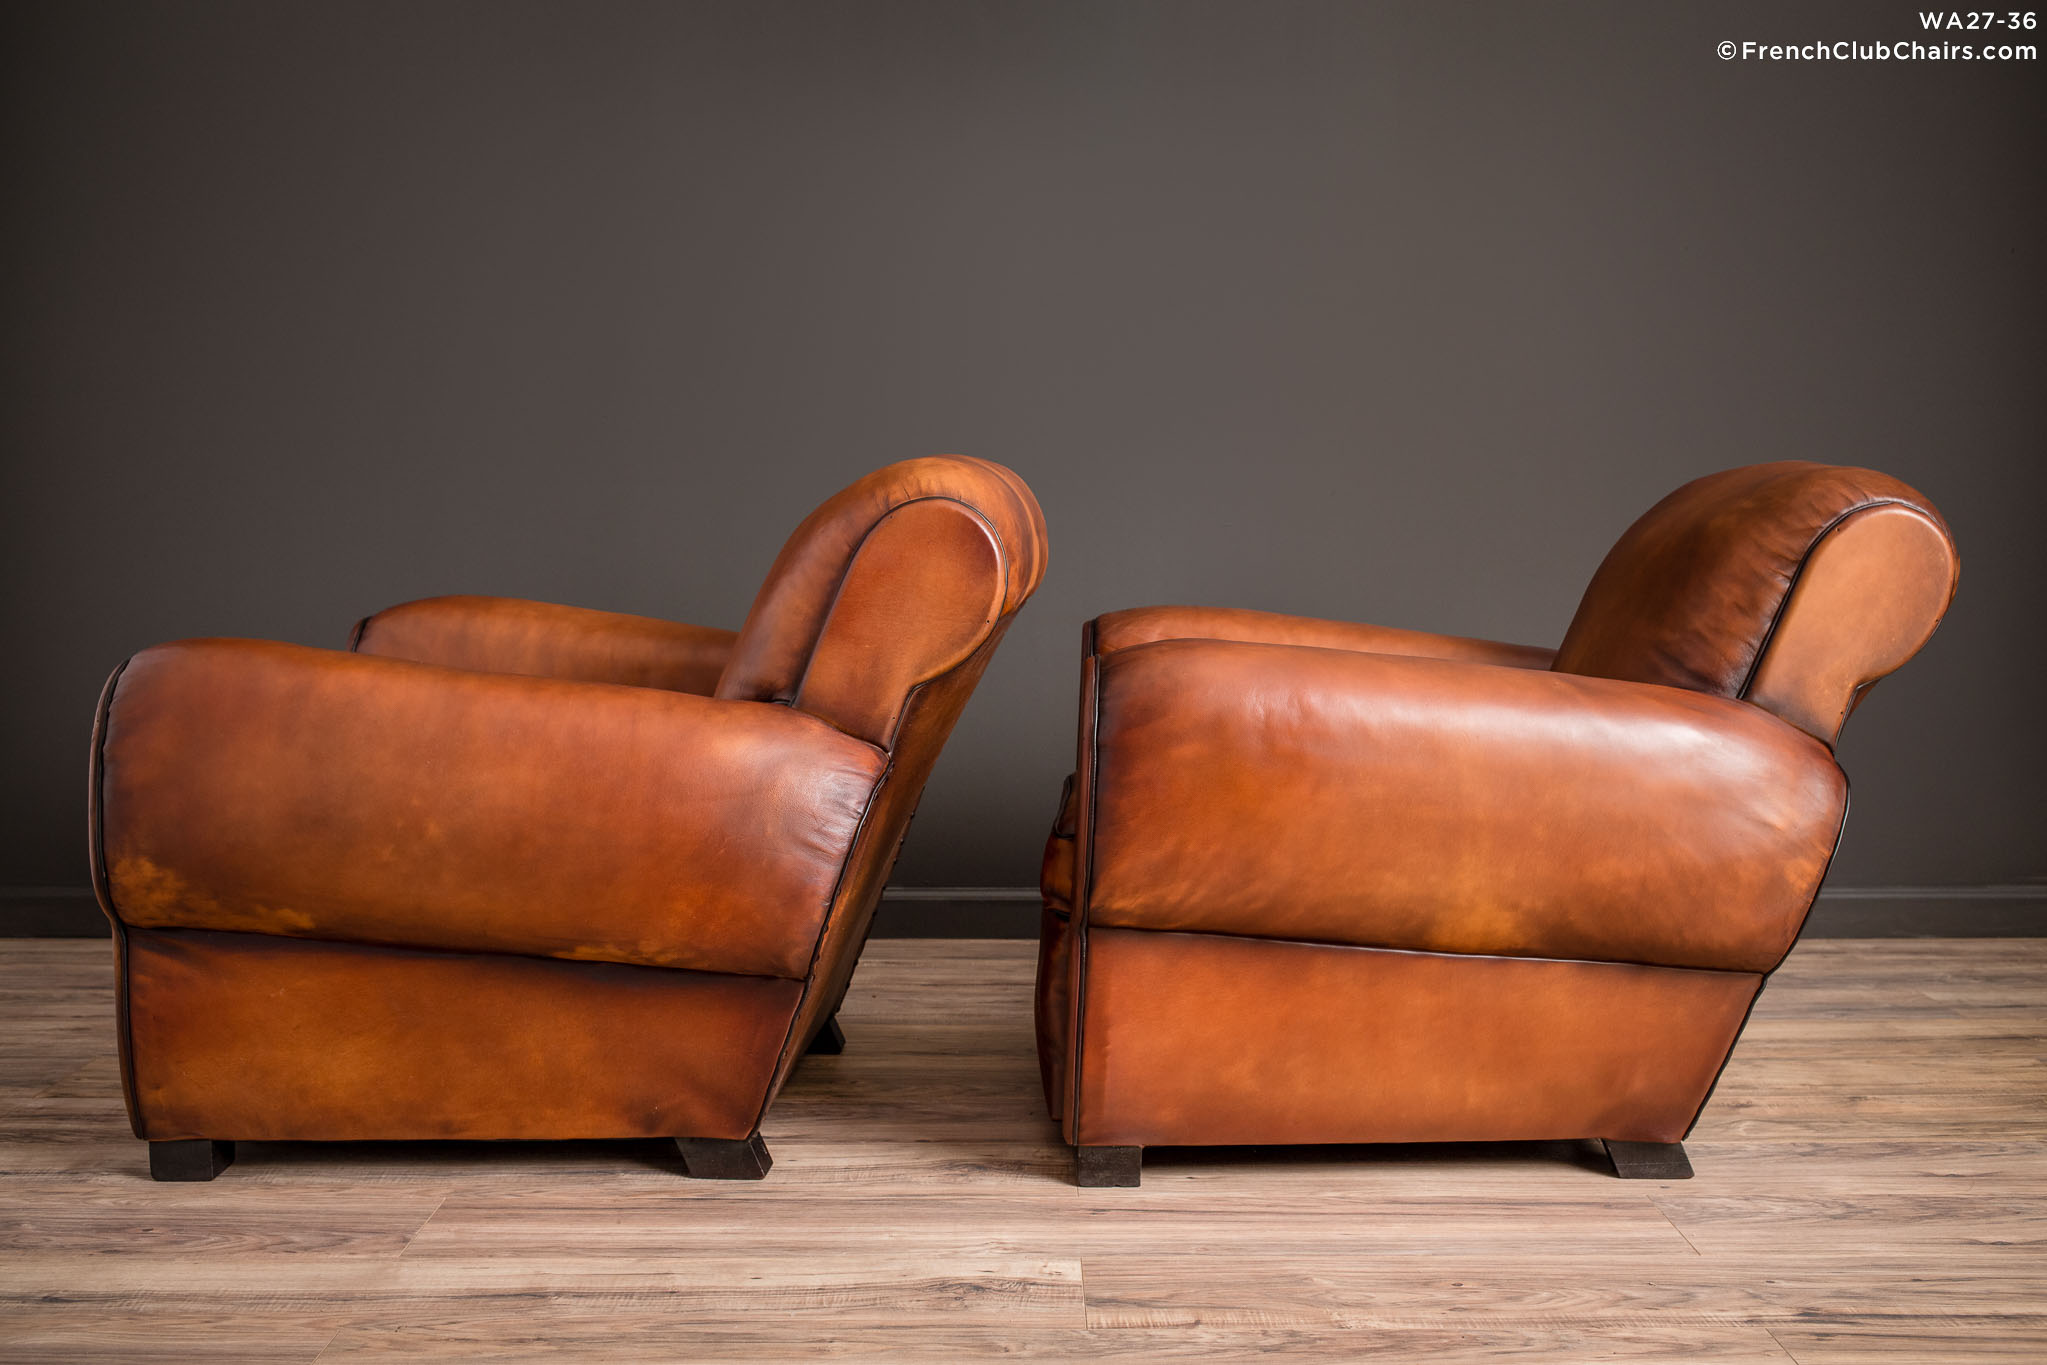 WA_27-36_Liseaux_Giant_Dark_Rollback_Pair_R_4LT-v01-williams-antiks-leather-french-club-chair-wa_fcccom